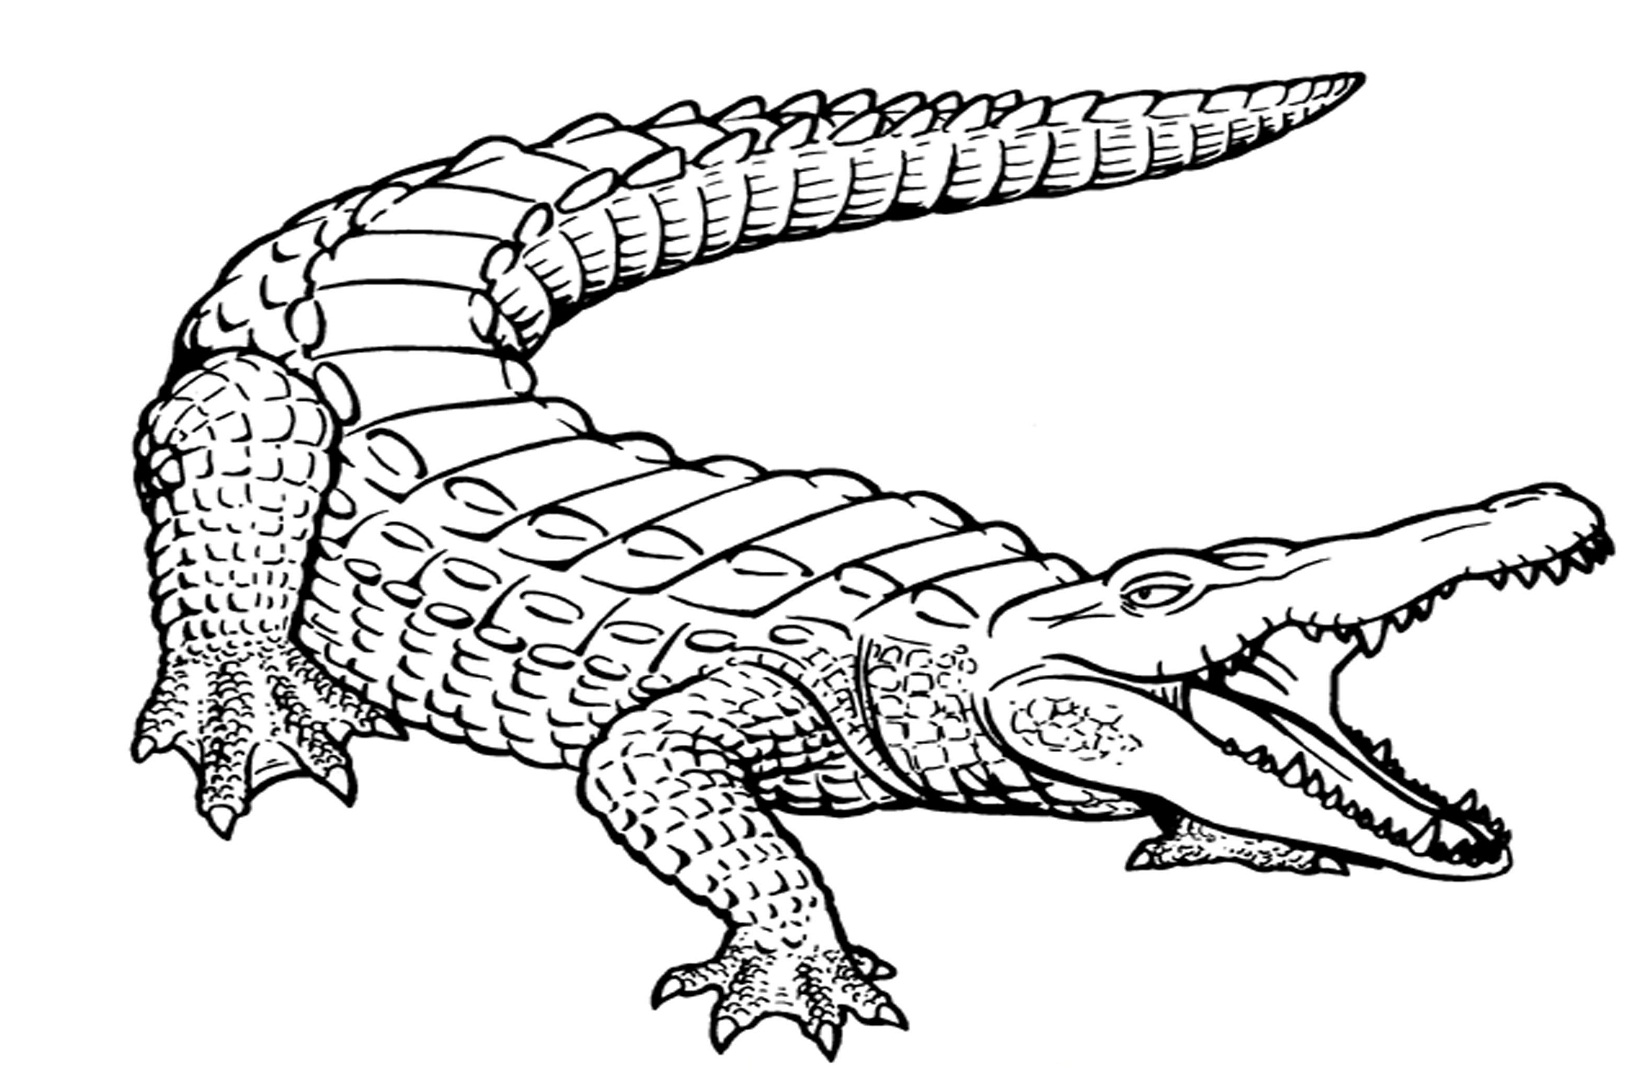 gator coloring sheets crocodile coloring pages to download and print for free sheets gator coloring